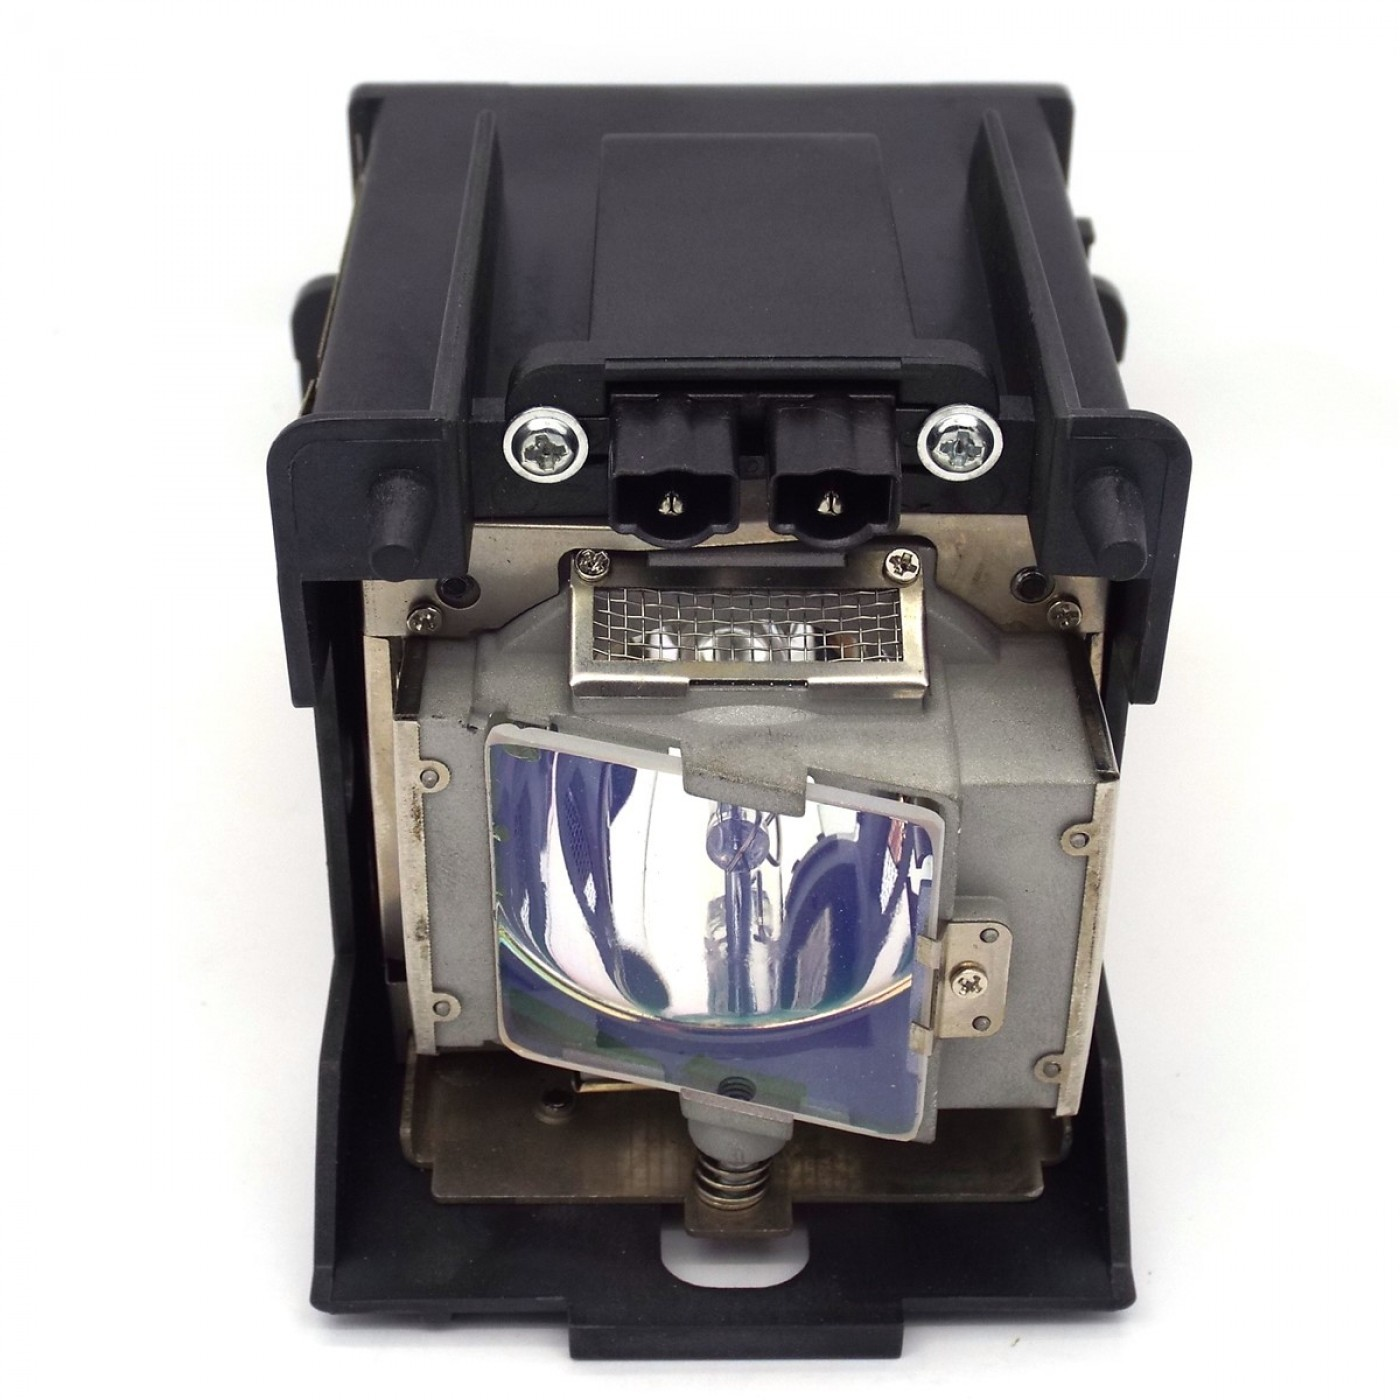 R9841805 Genuine Barco Lamp For The Sim 7 Projector